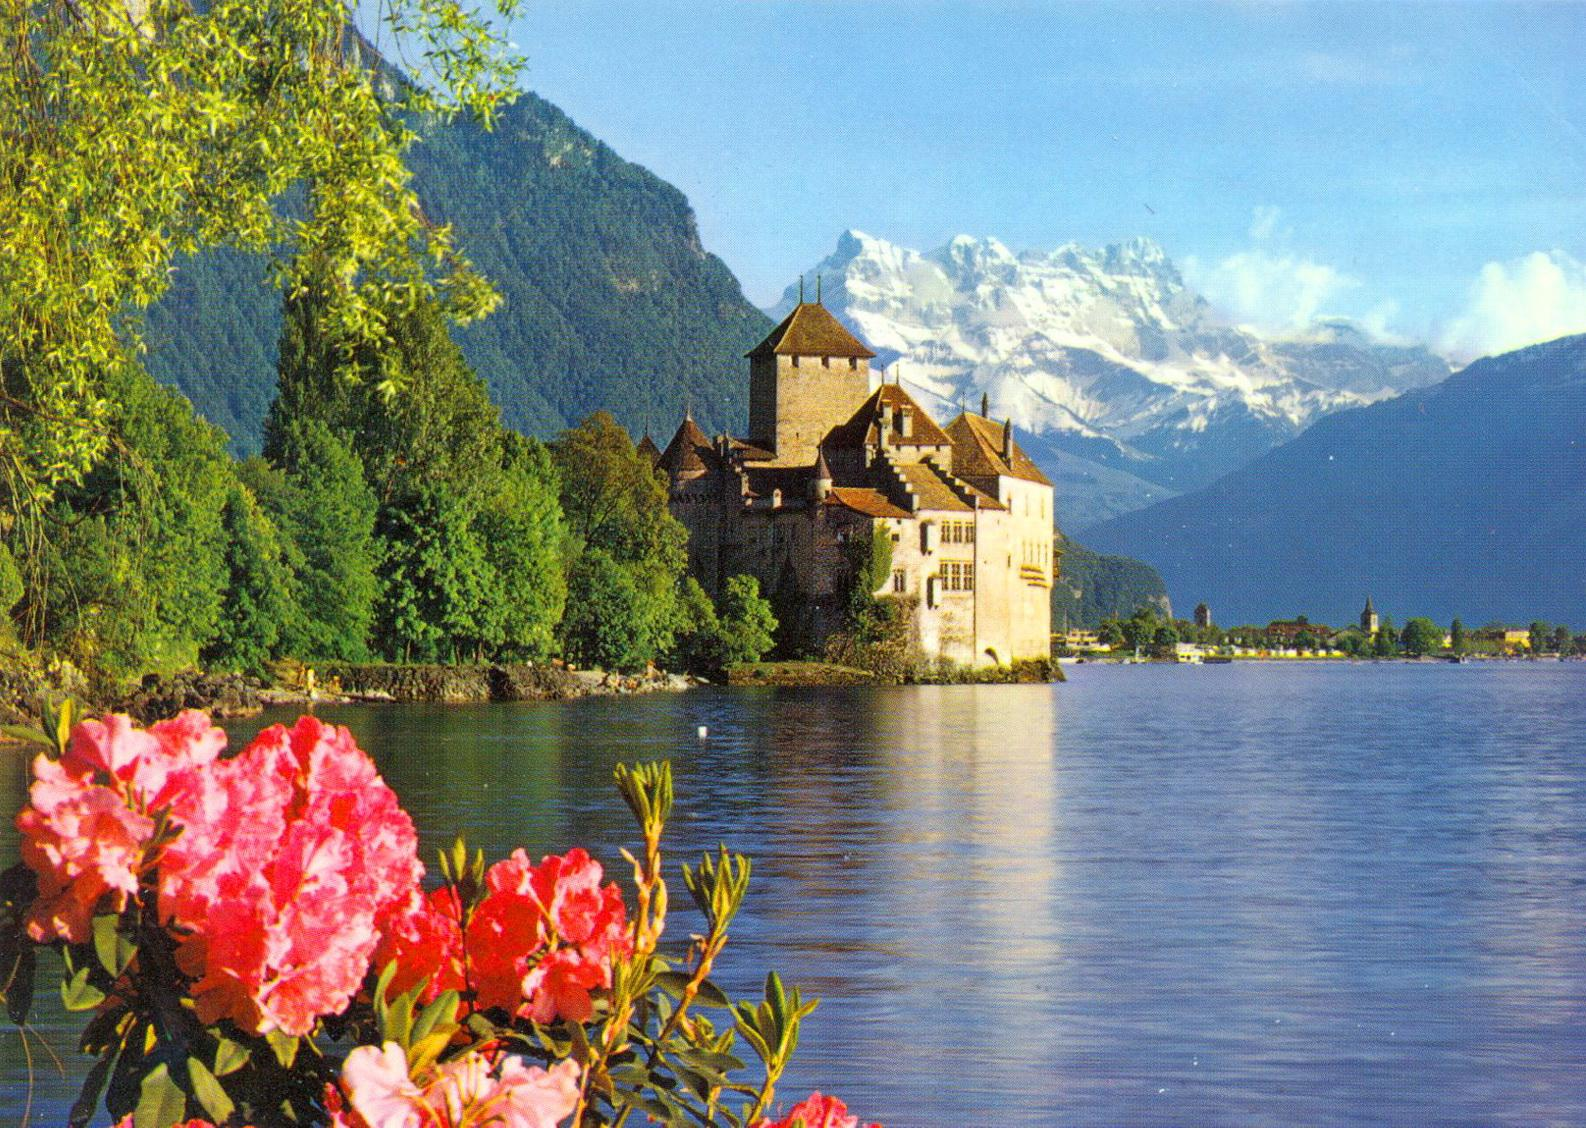 Chateau Chillon Castle by Executive Limousines Services | Museum | Weddings